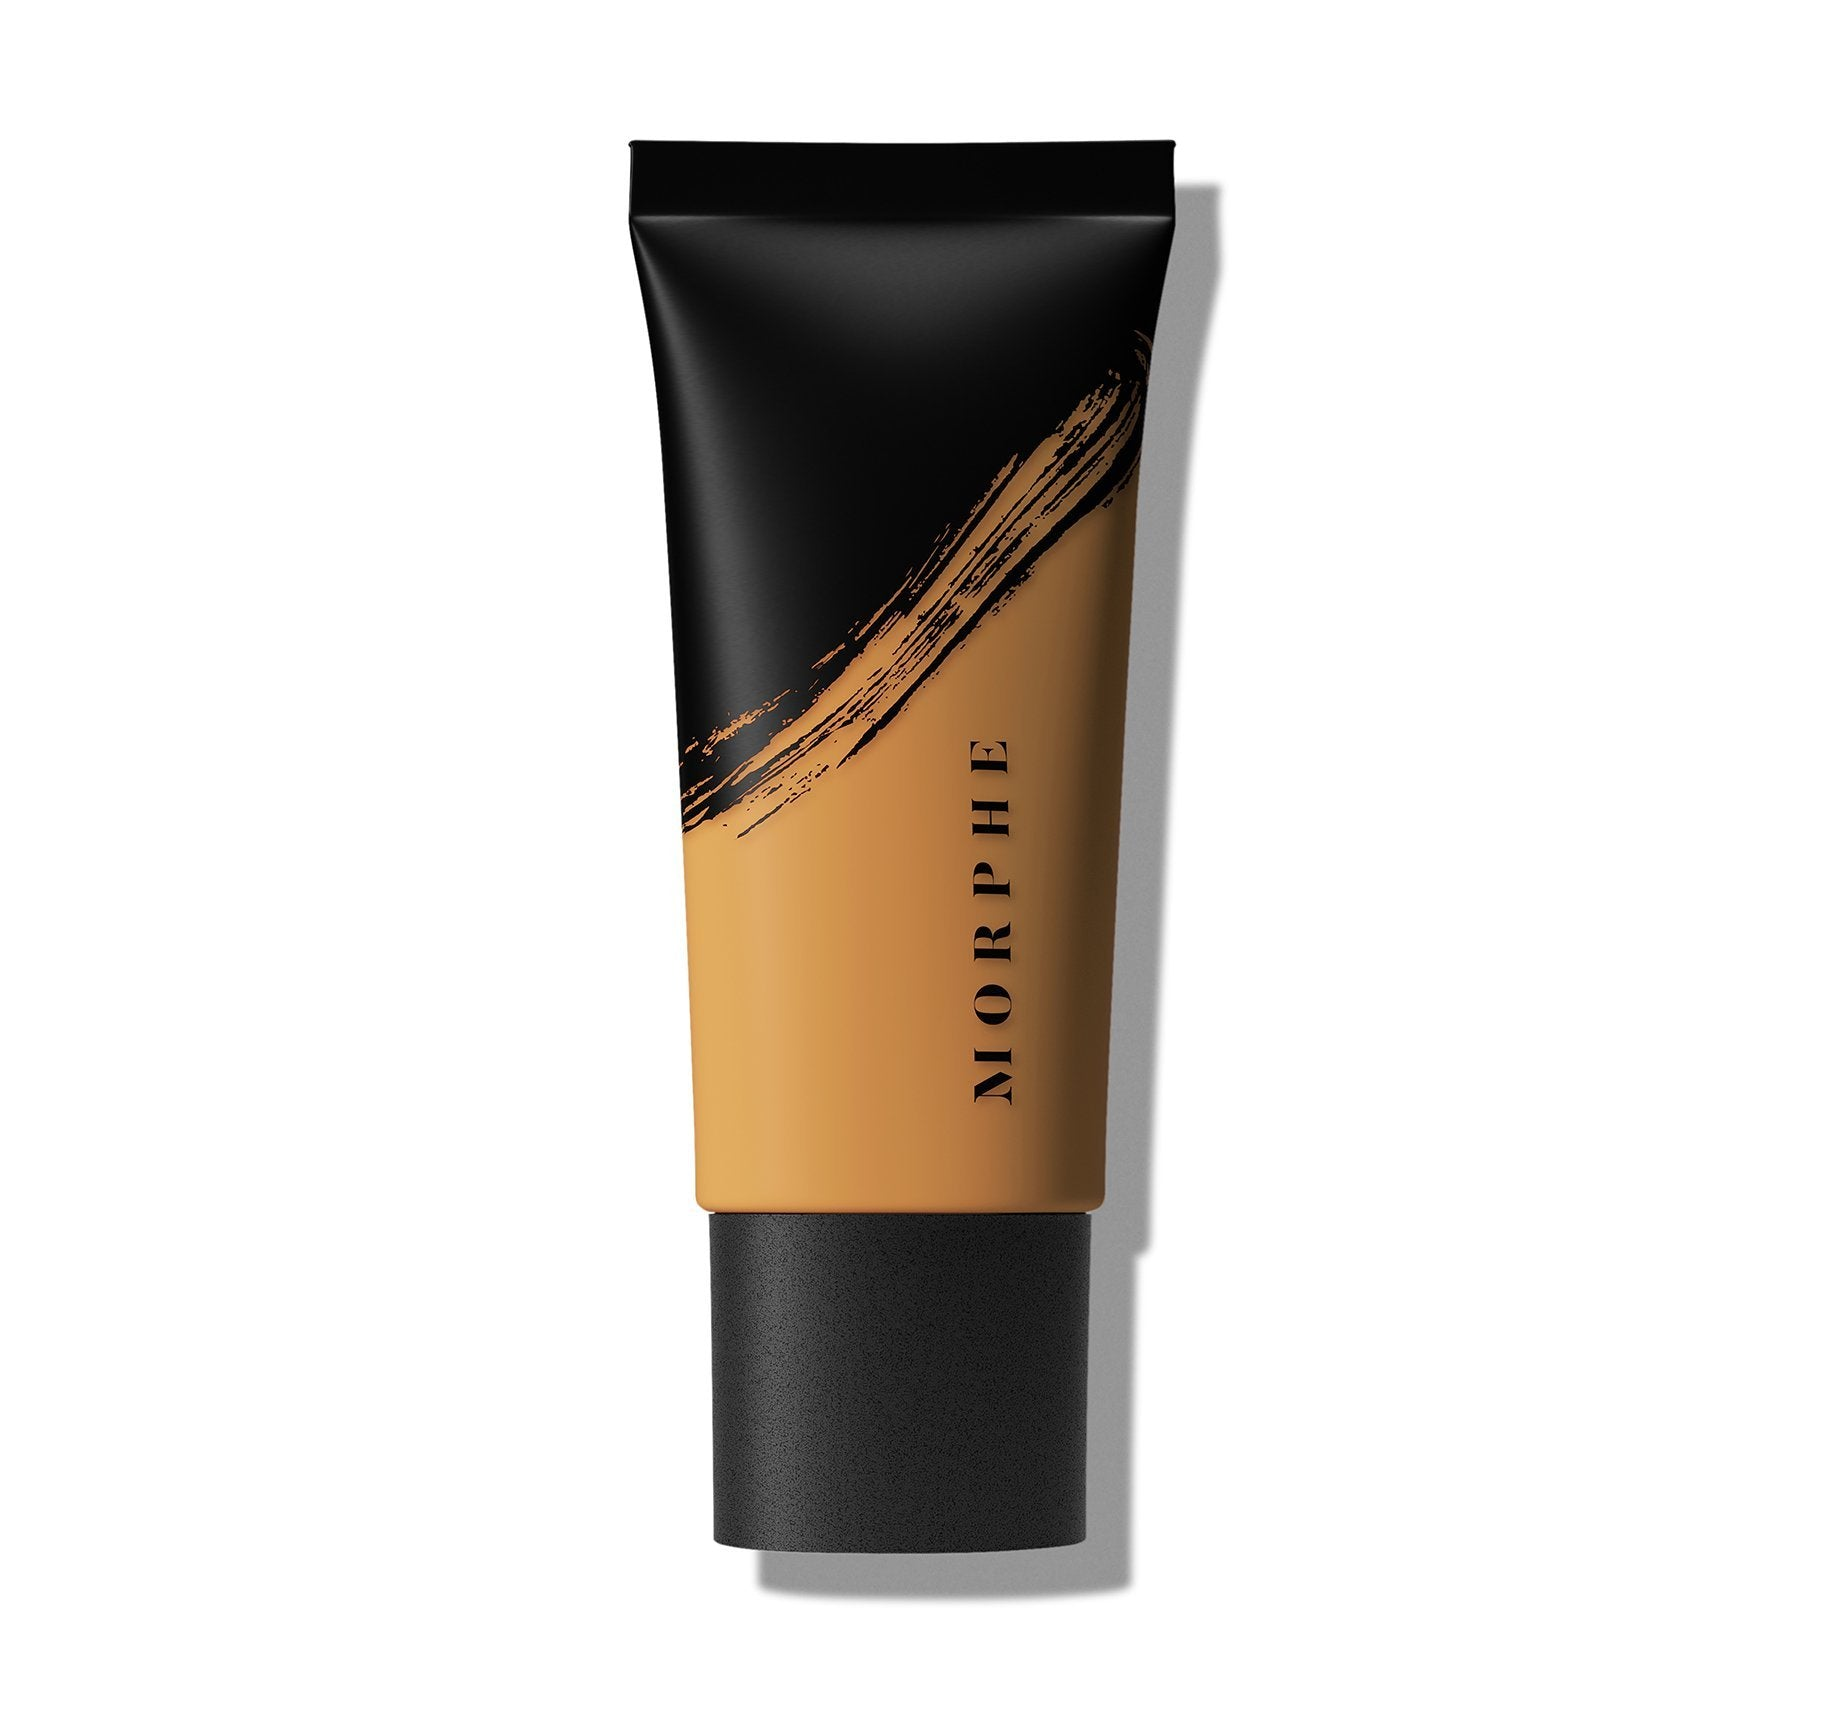 FLUIDITY FULL-COVERAGE FOUNDATION - F3.29, view larger image